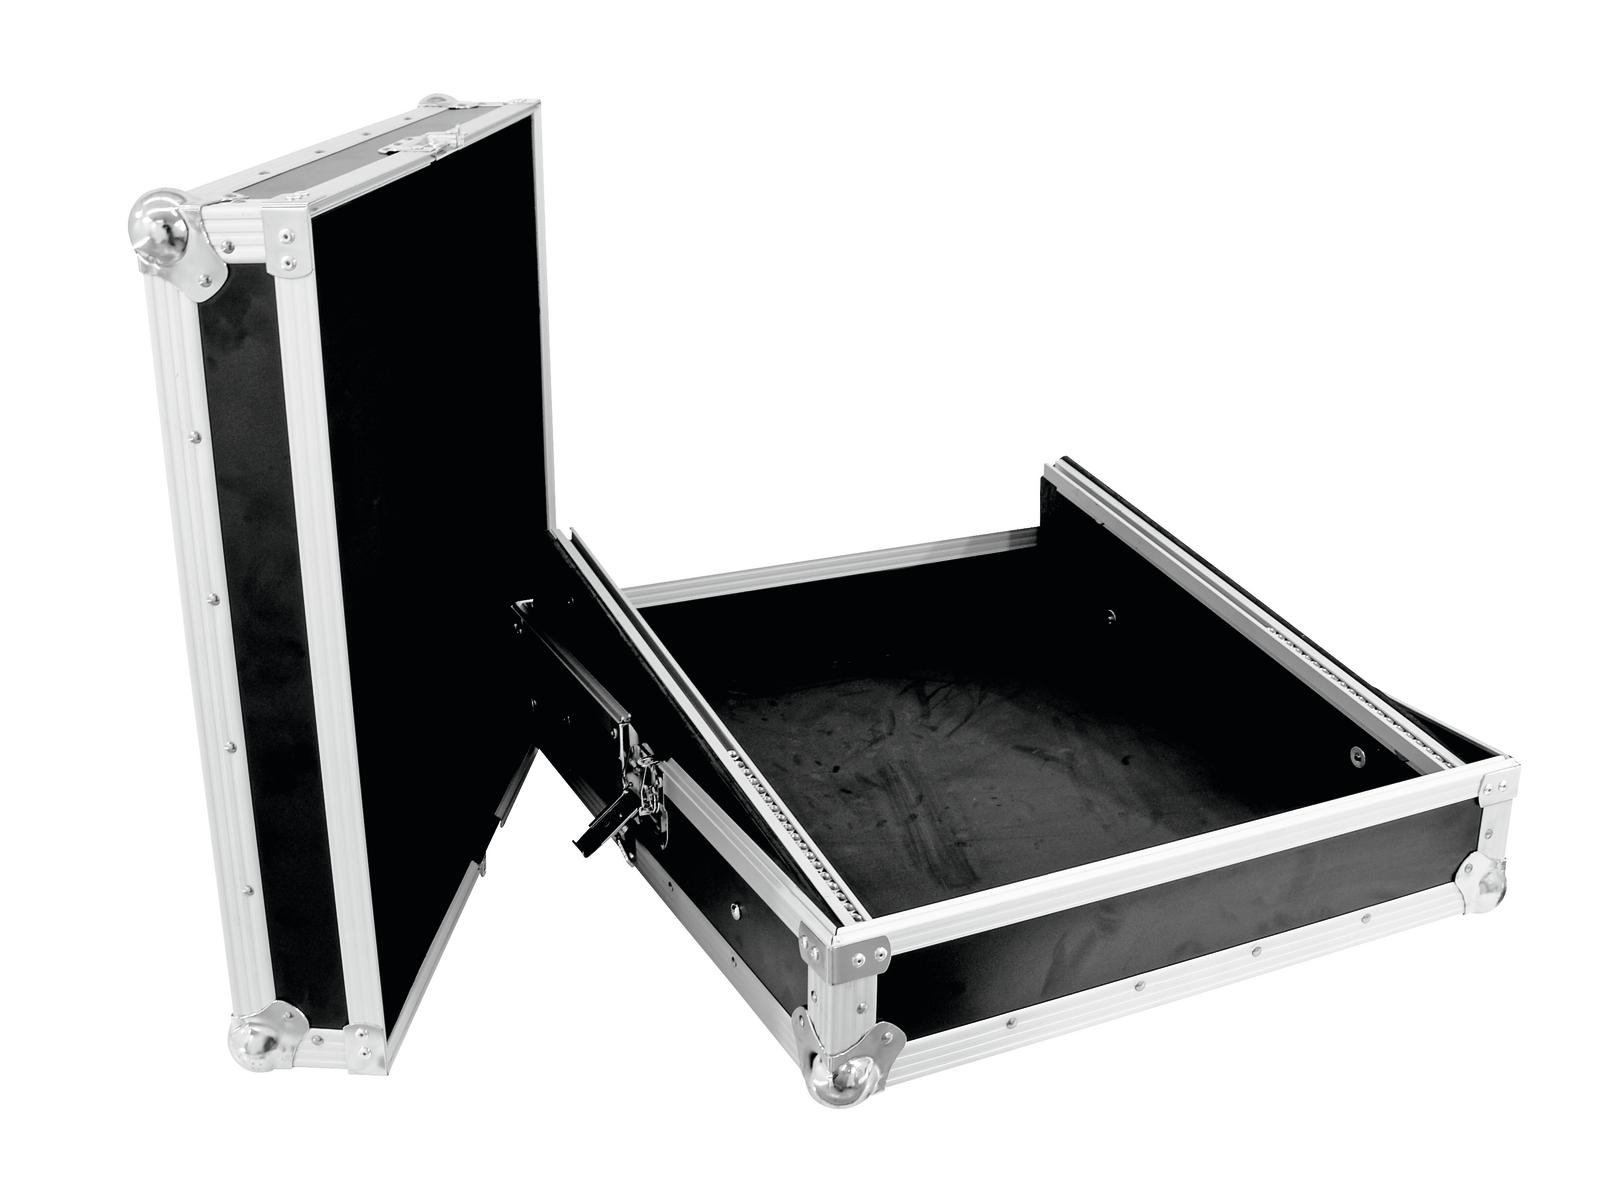 Flight Case Custodia per Dj Mixer Audio Luci Inclinato Roadinger Pro MCB-19